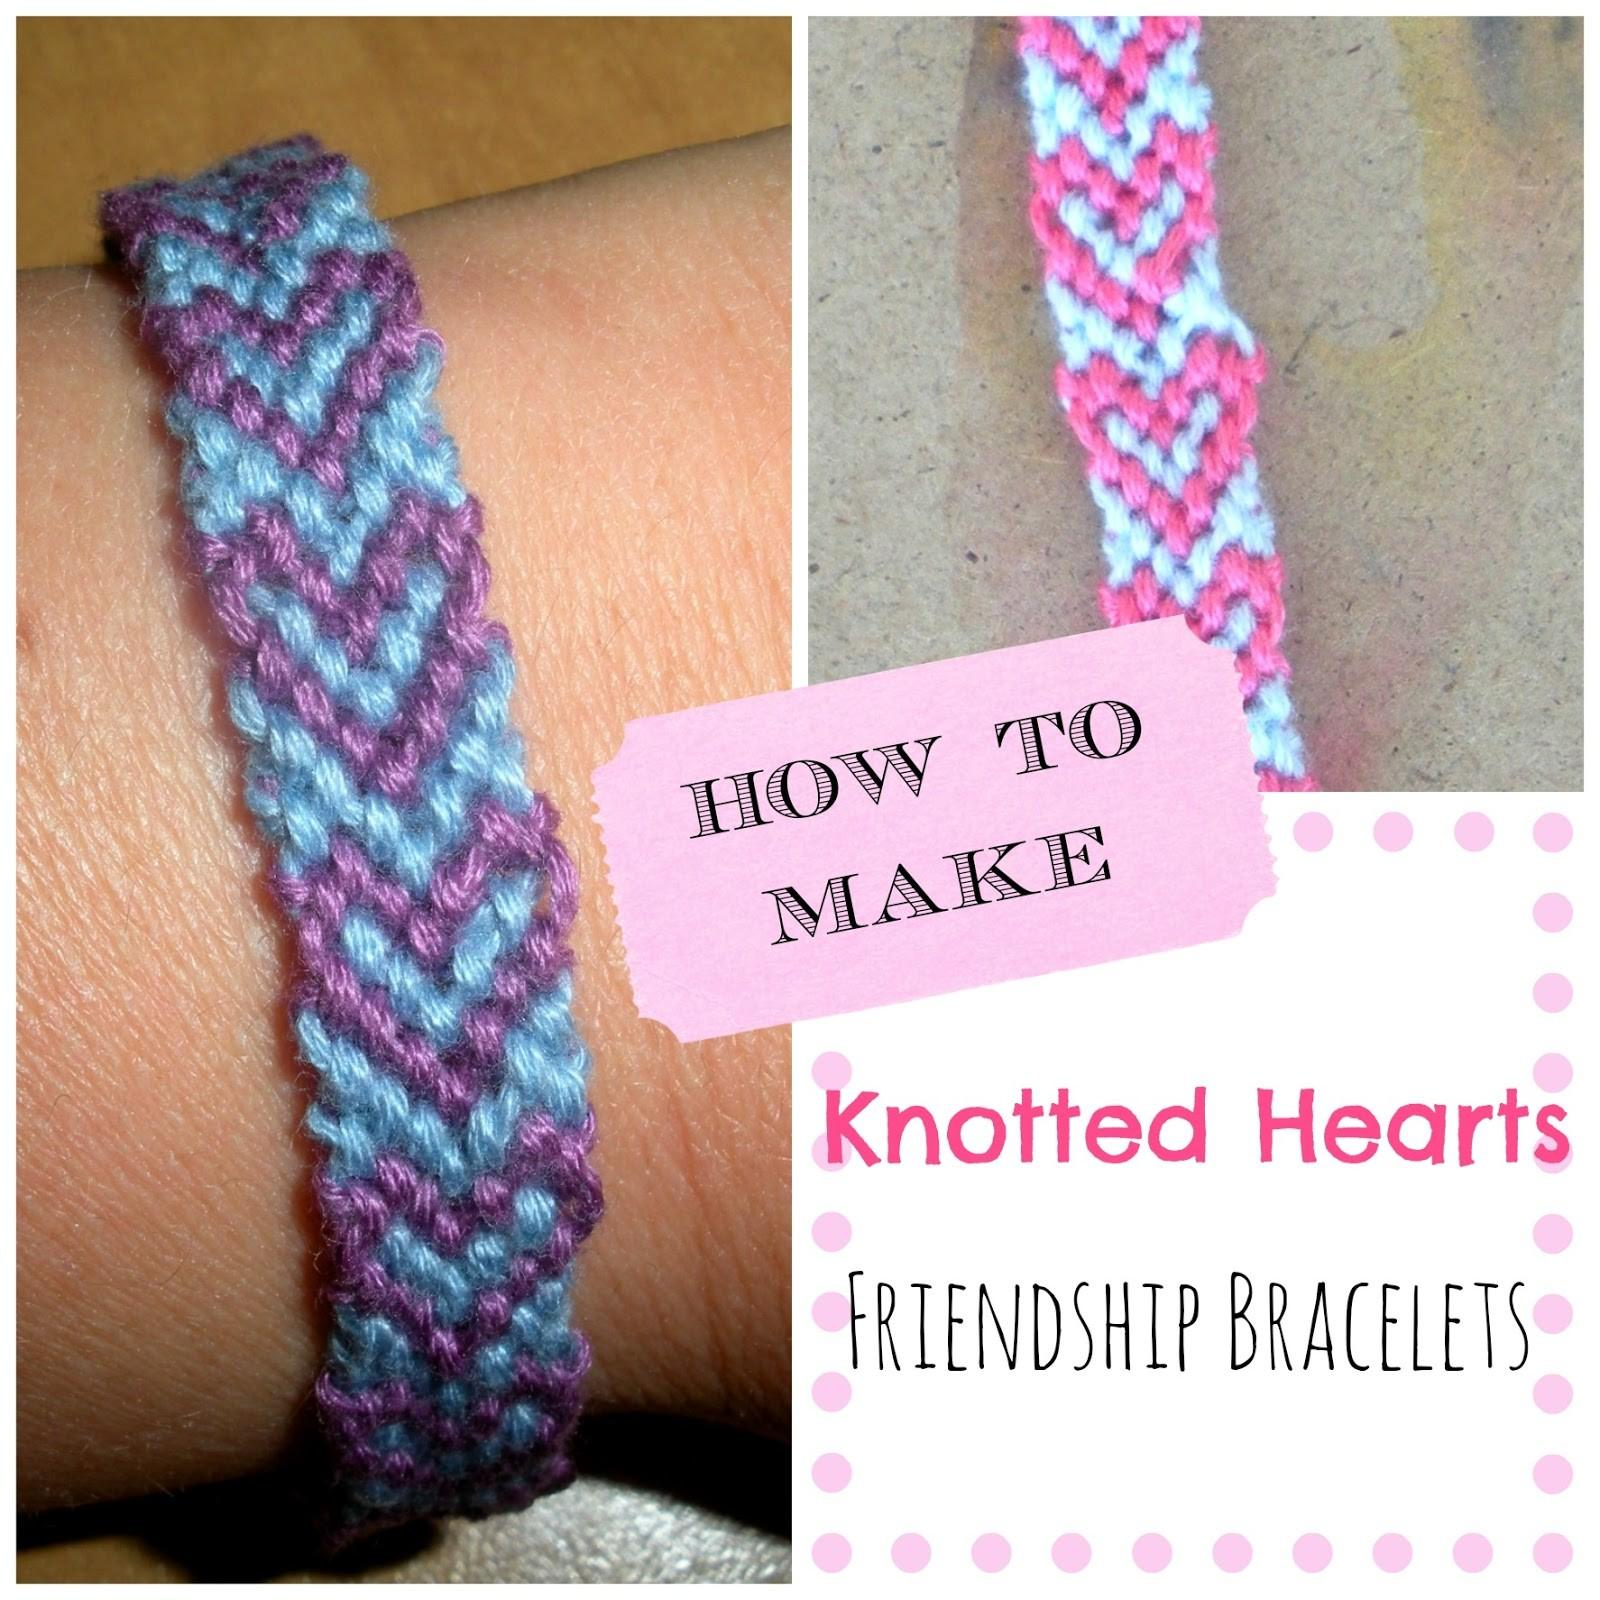 Paper Tape Pins Make Knotted Hearts Friendship